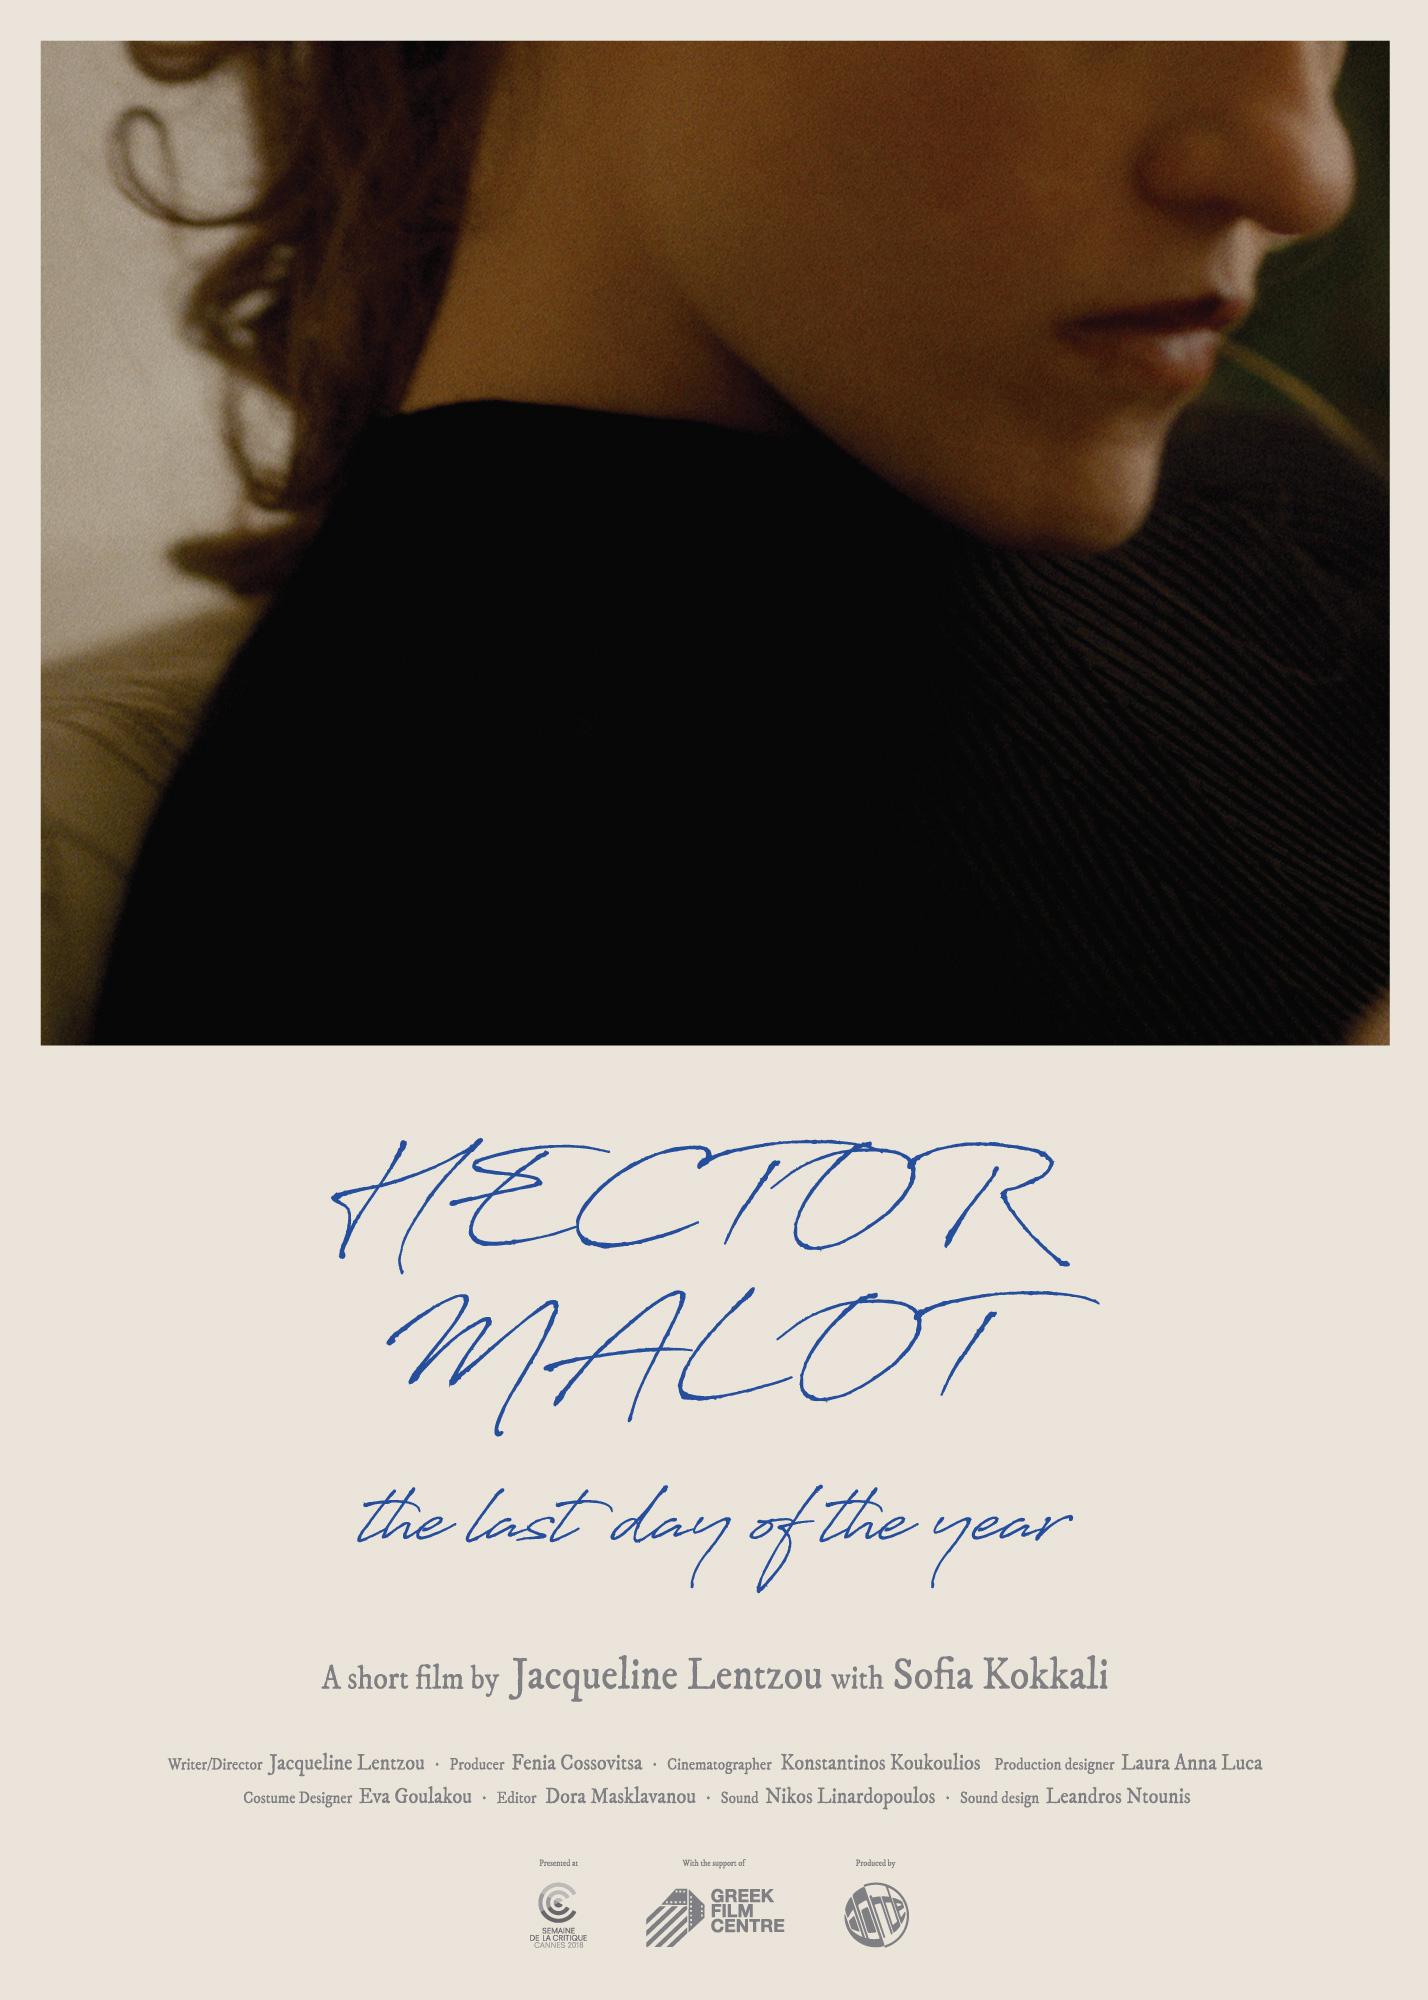 HECTOR-MALOT-THE-LAST-DAY-OF-THE-YEAR